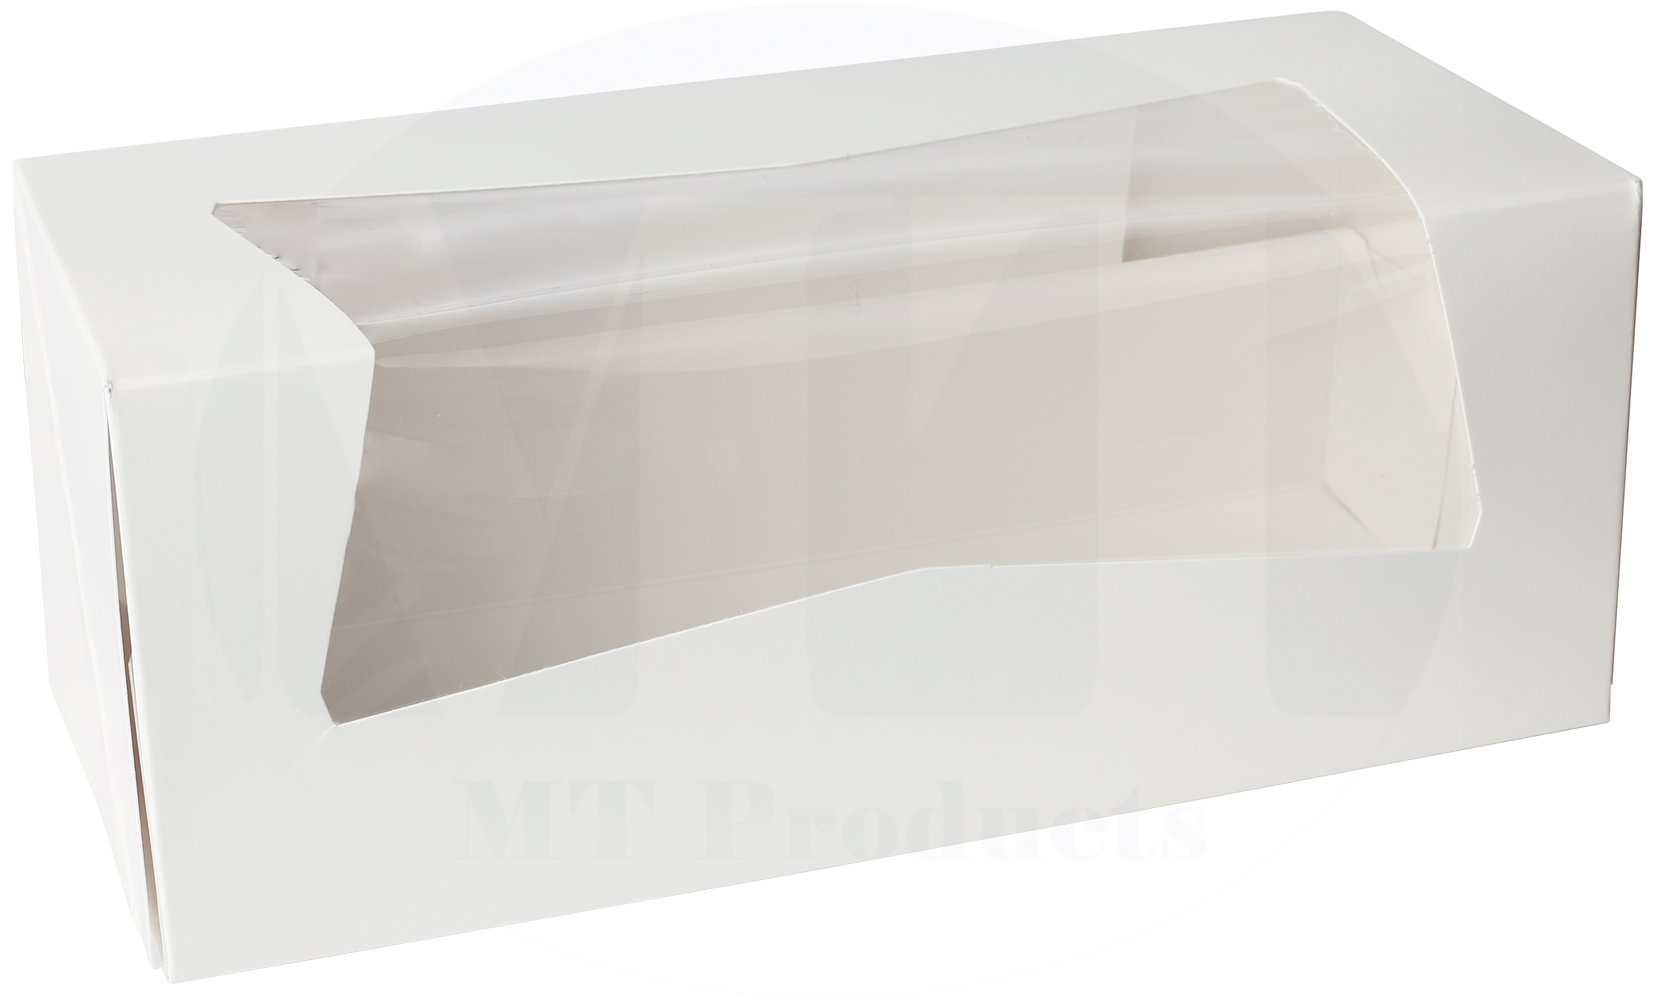 9'' Length x 4'' Width x 3.5'' Height White Paperboard Auto-Popup Window Donut/Bakery Box by MT Products (Pack of 15) by MT Products